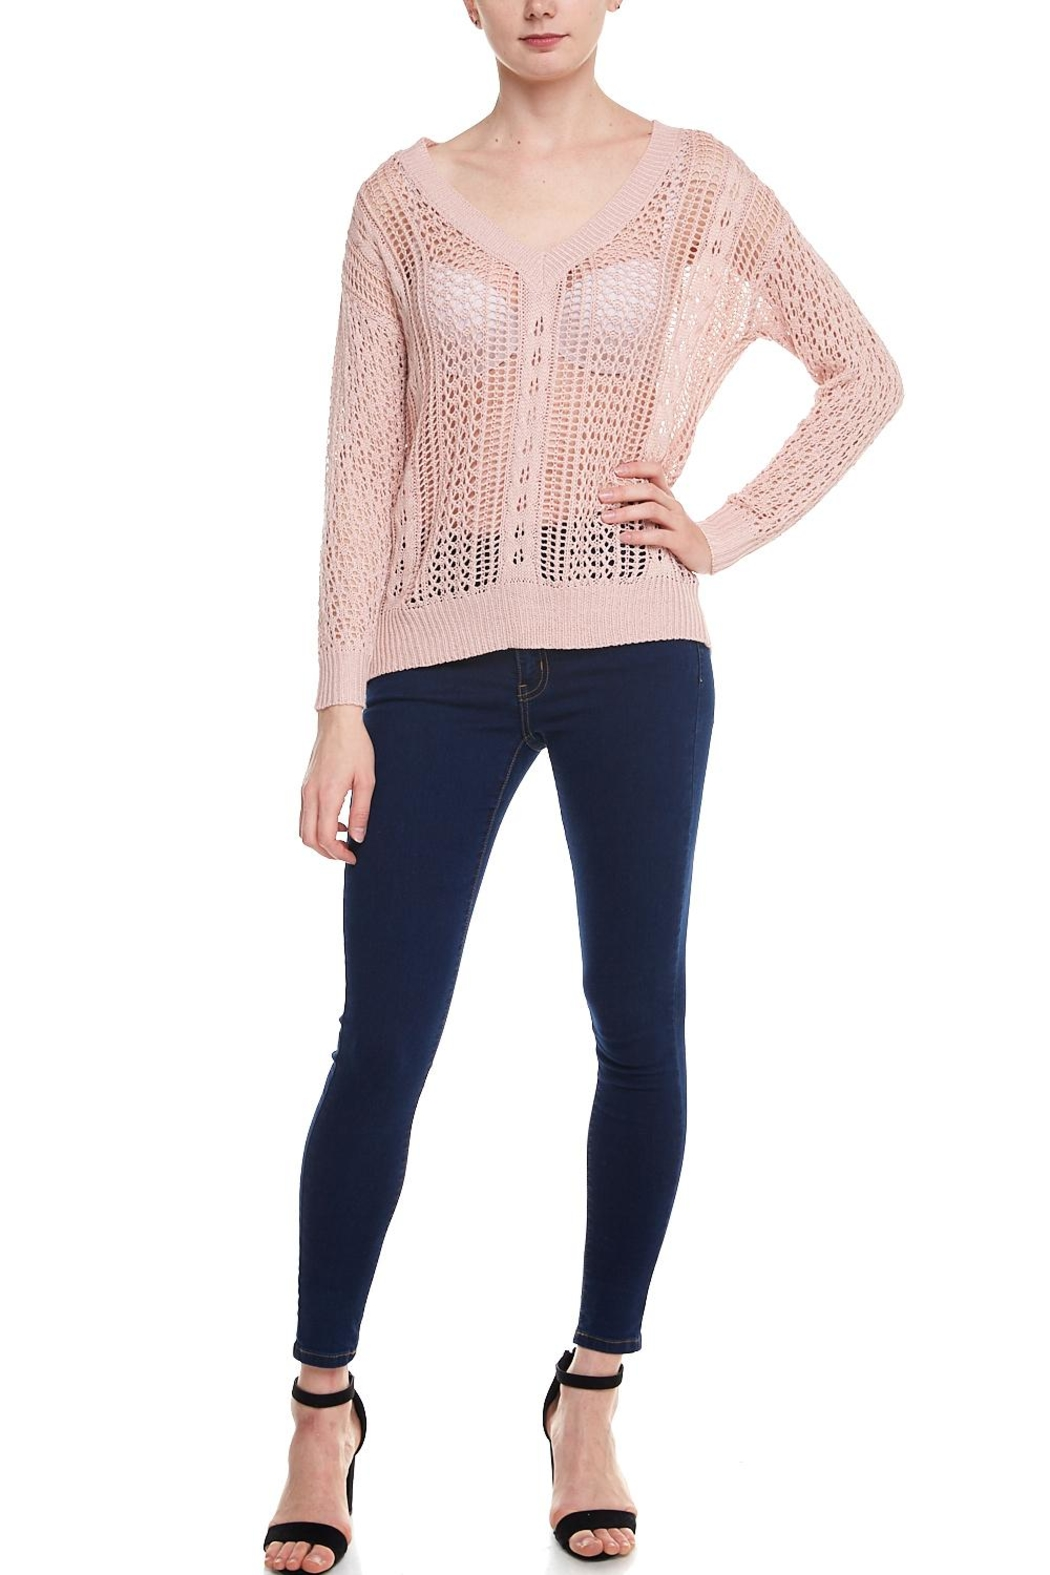 f1c6ac0aec Love Tree Open Knit Sweater from New York by Dor L Dor — Shoptiques